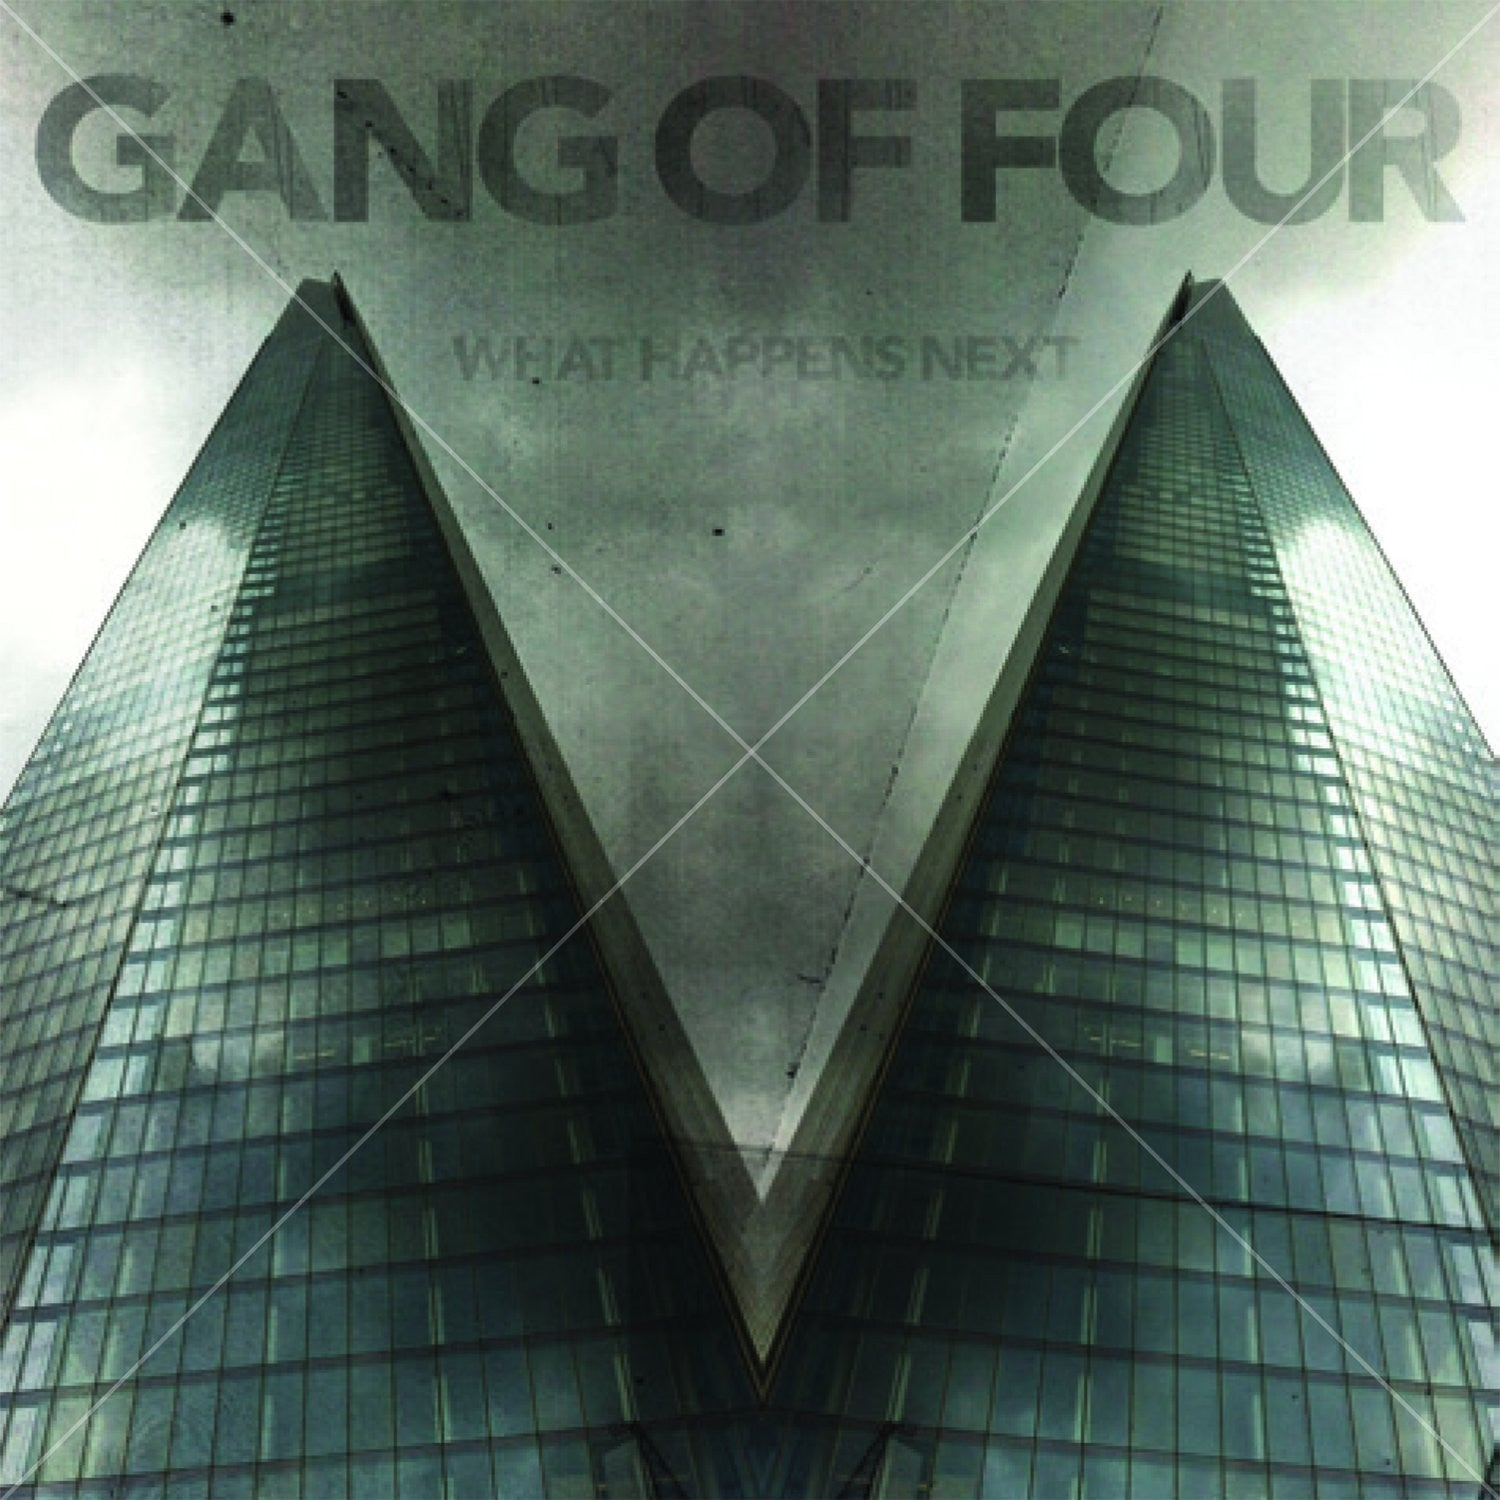 GANG OF FOUR - WHAT HAPPENS NEXT LP